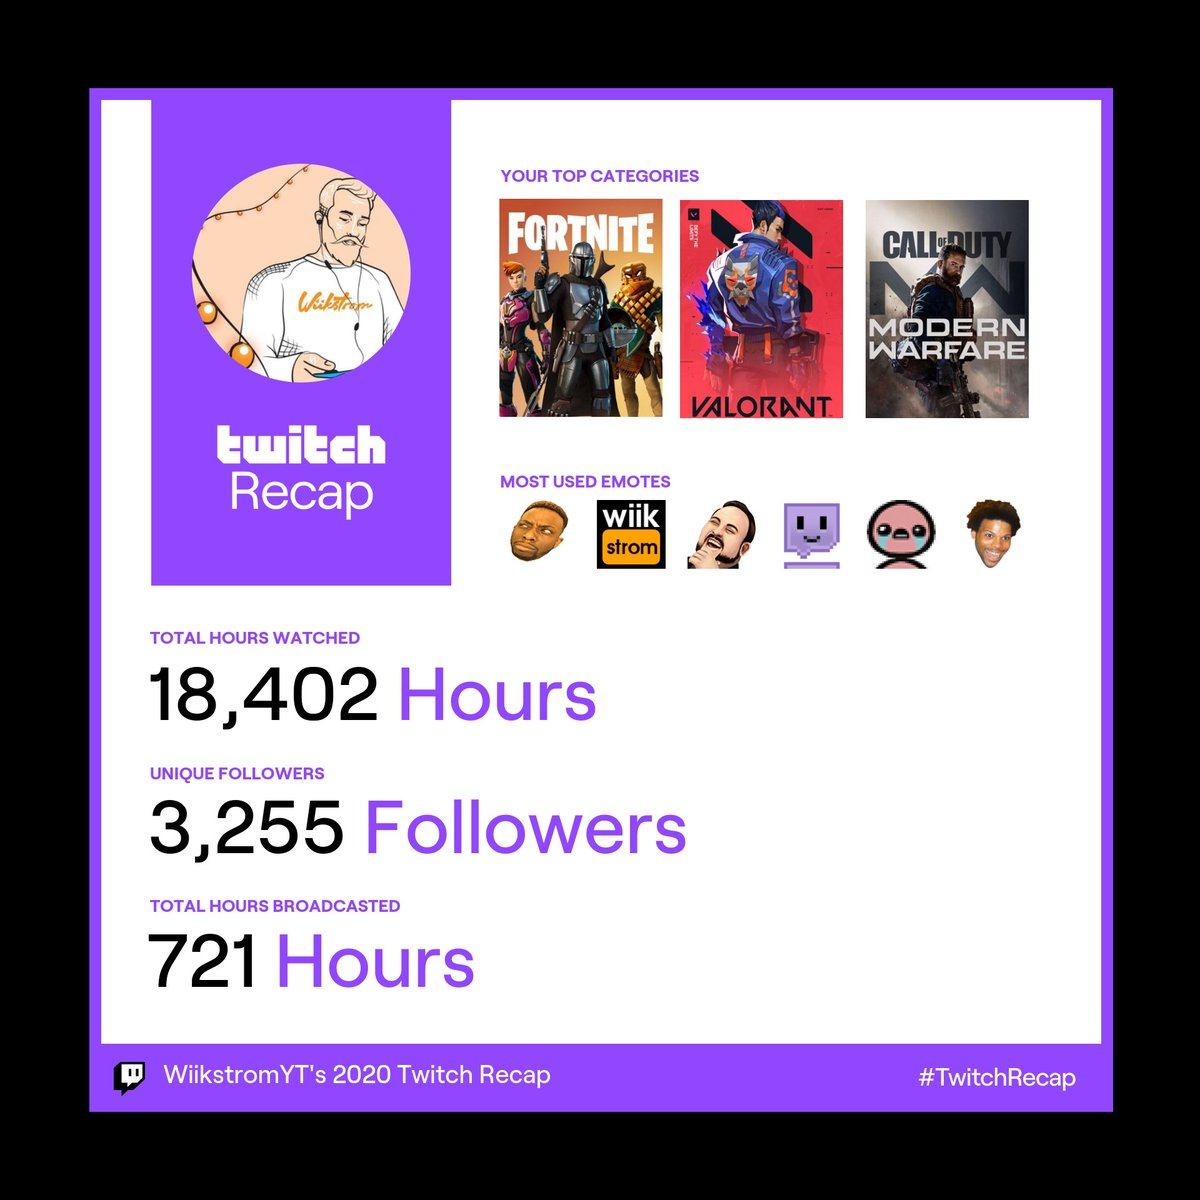 This is impressive. I'm most impressed by the fact that I streamed 721 hours. Which is averaging about 61 hours per month. I really do grind. Thanks to the new 3255 followers and counting! Also y'all watched me for 18.5k hours 🤩 🤯 #twitchrecap